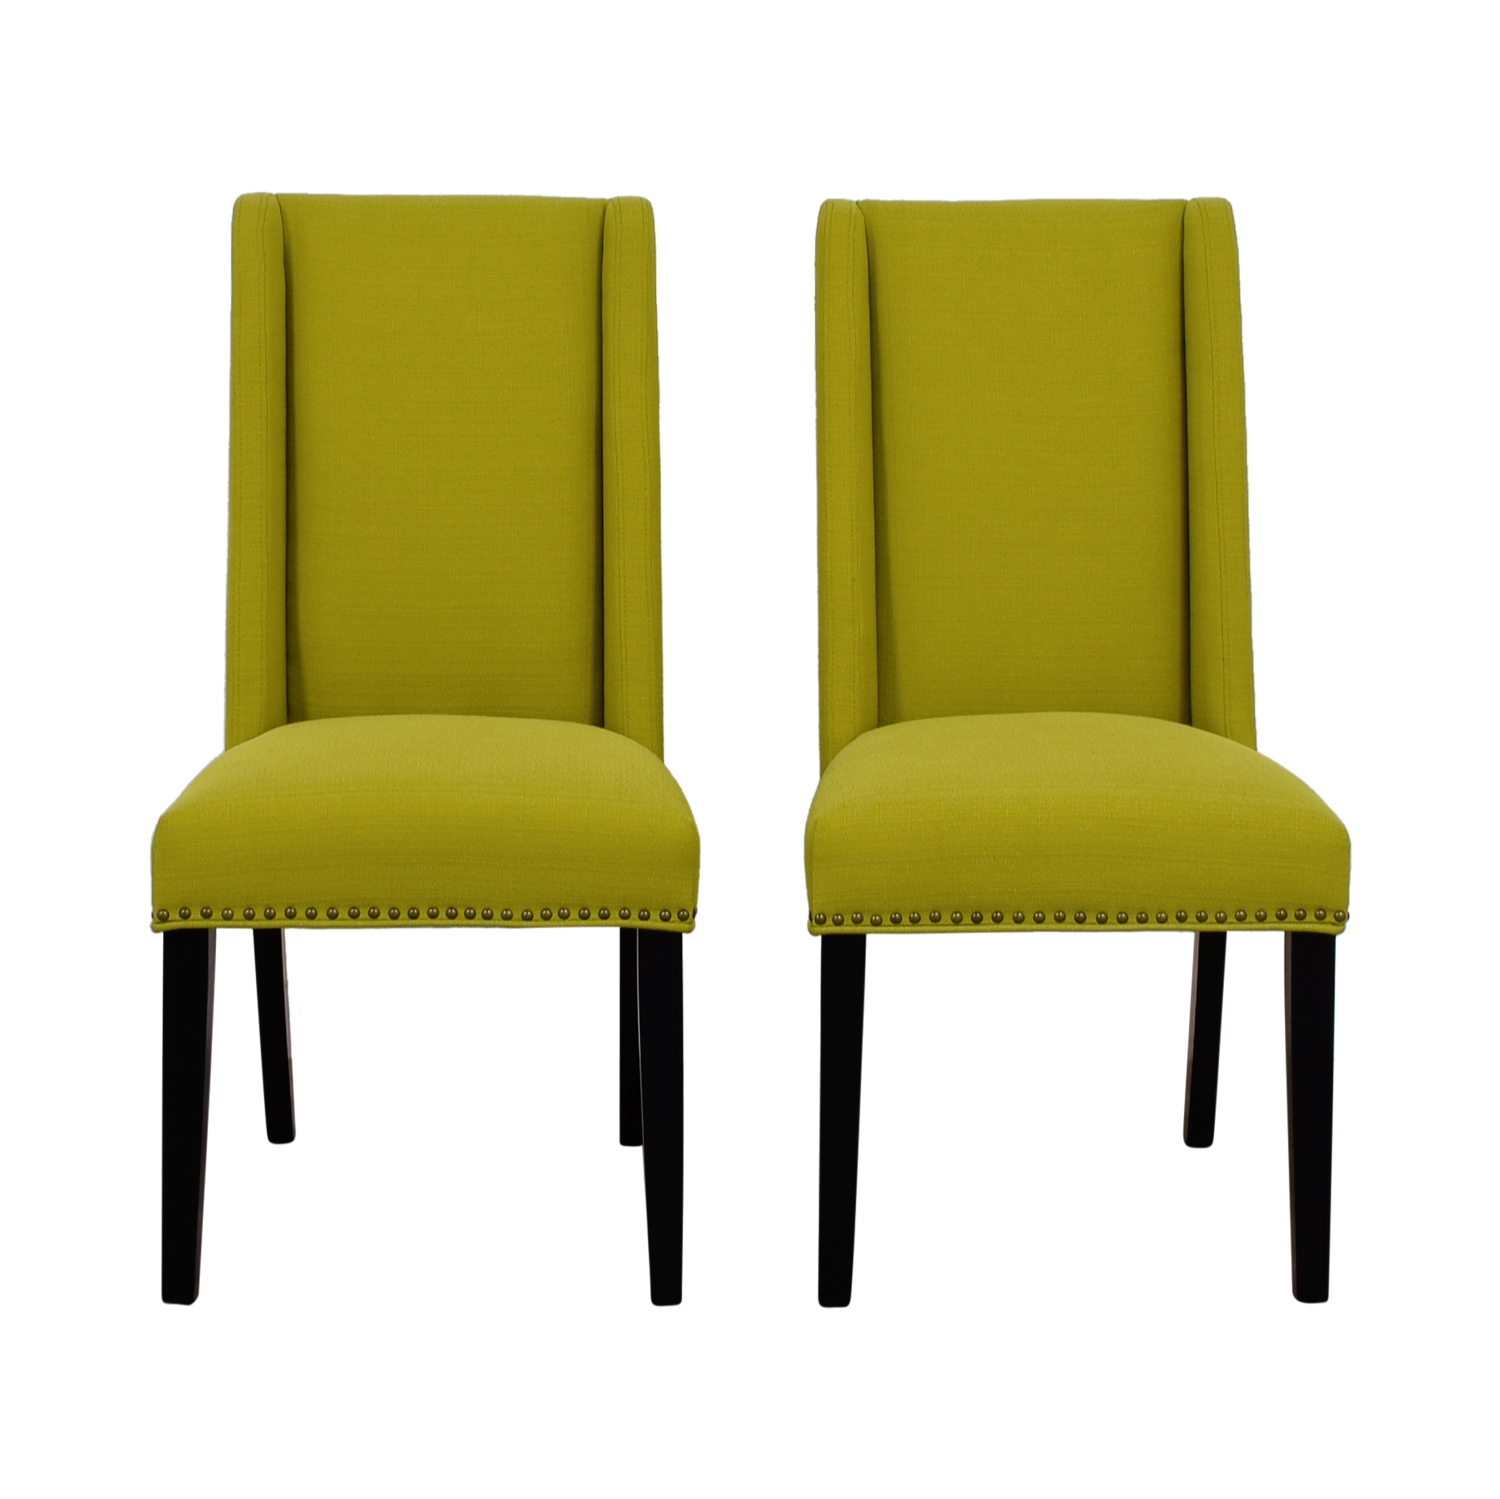 83% OFF - Wayfair Wayfair Green Accent Chairs / Chairs